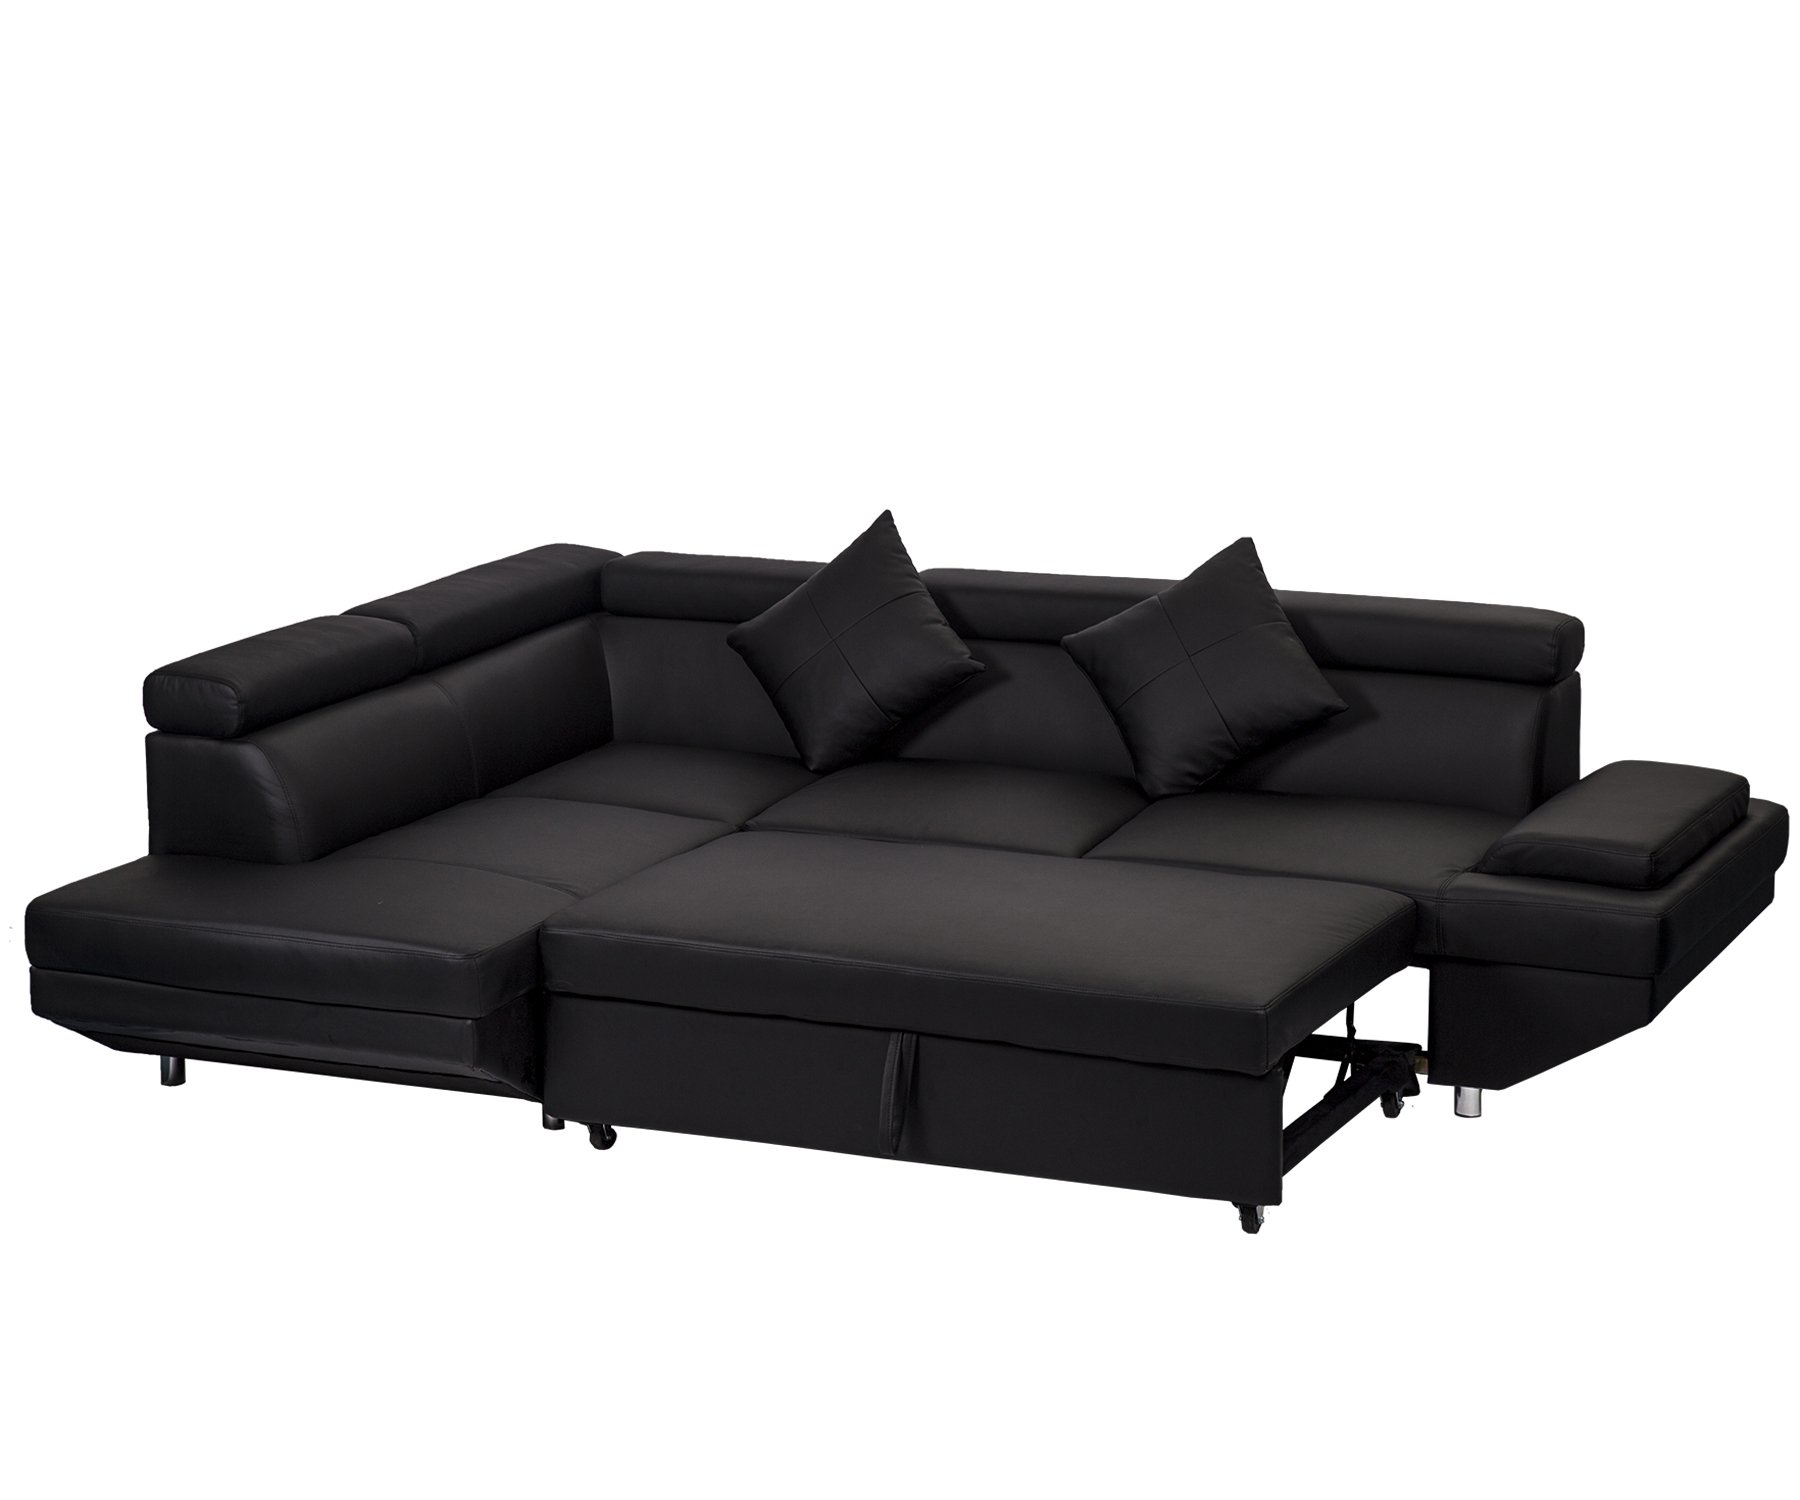 Corner Sofa Sectional Living Room Couch Bed Modern Futon Contemporary